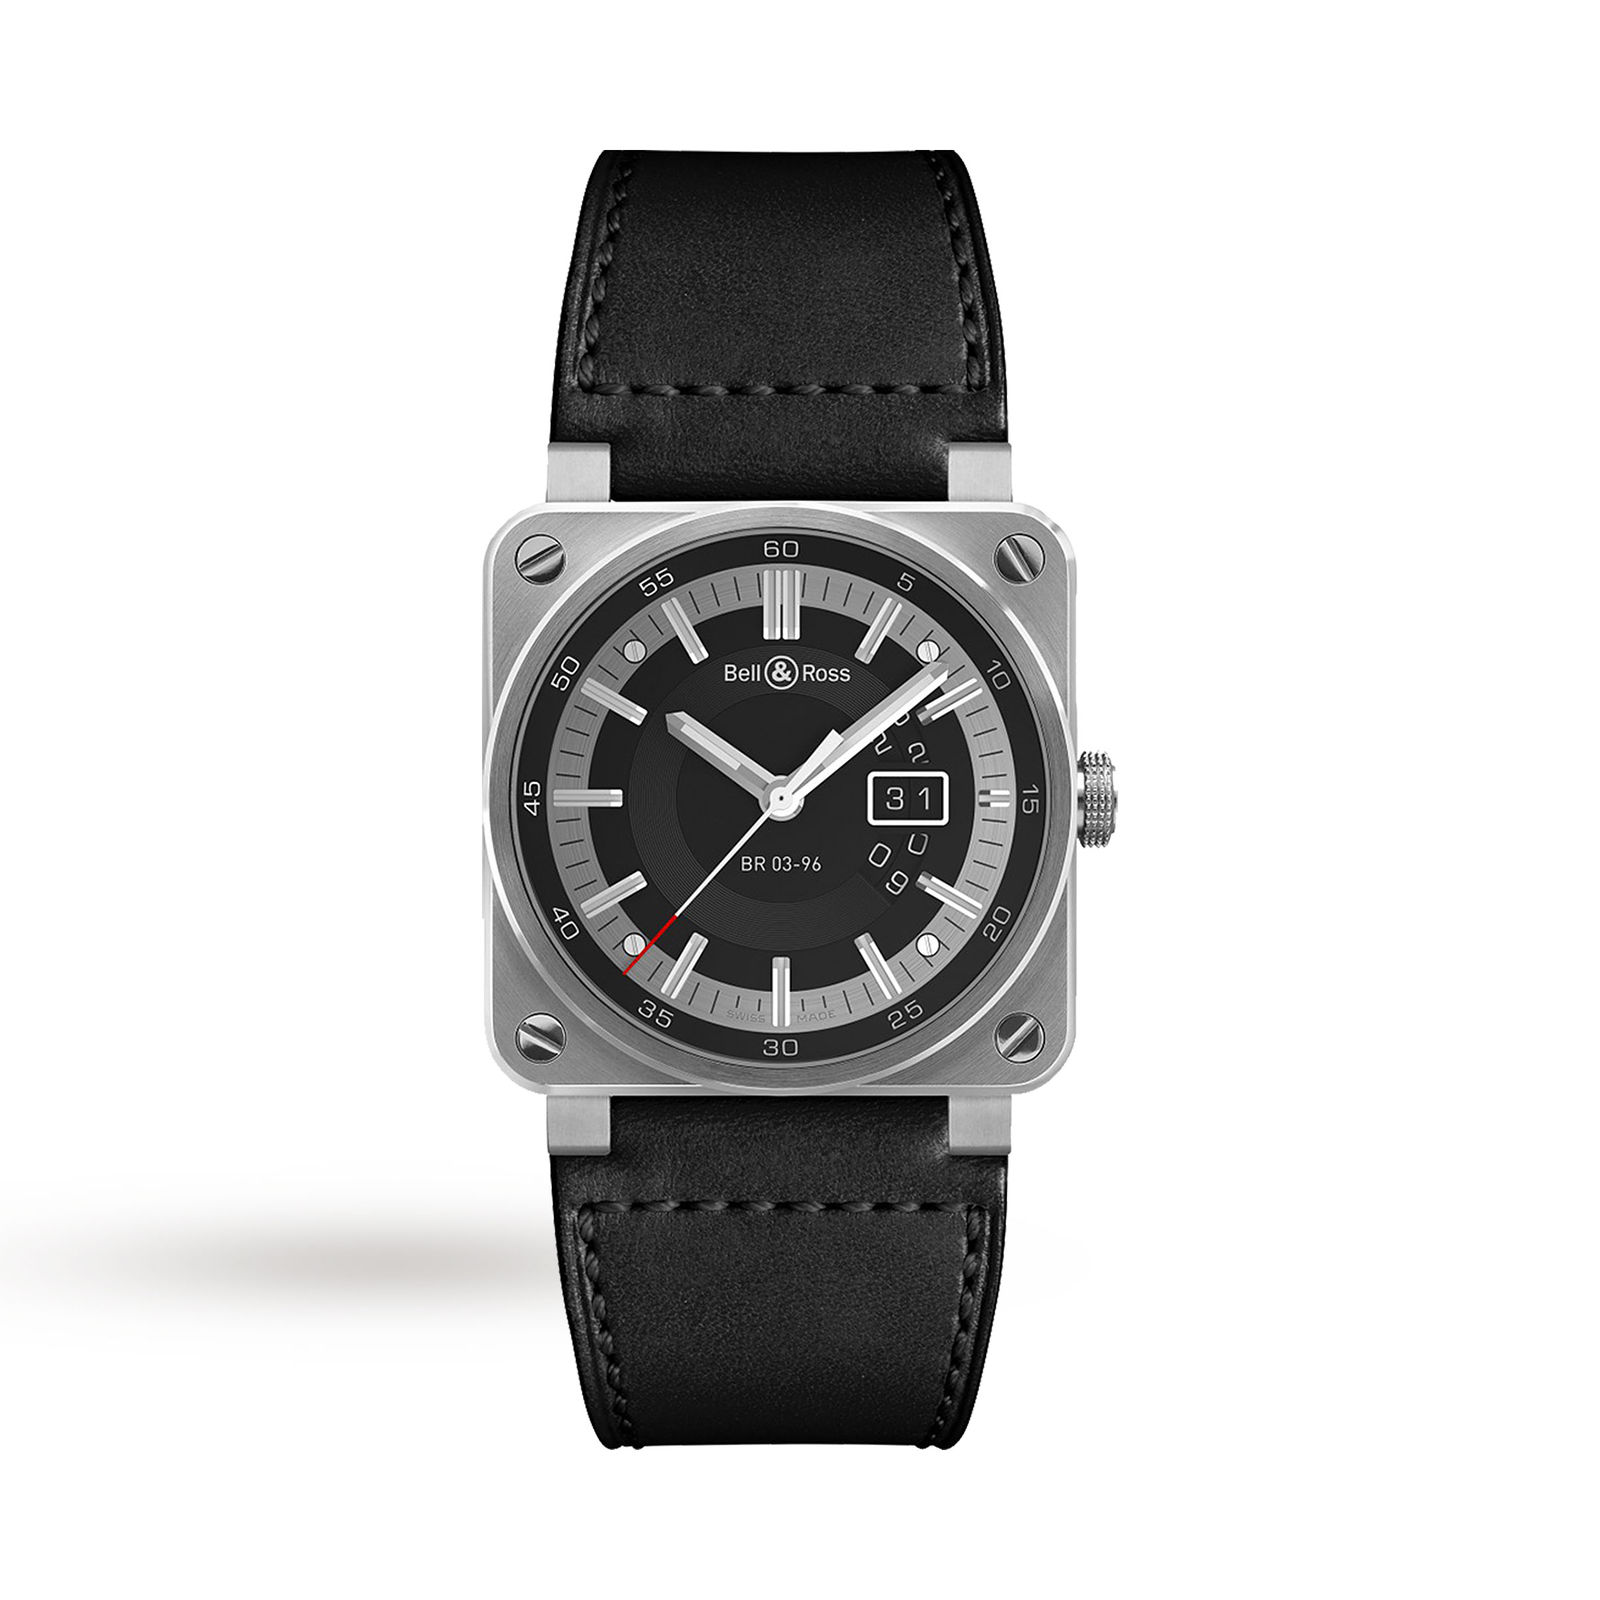 Bell & Ross BR0396 Mens Watch